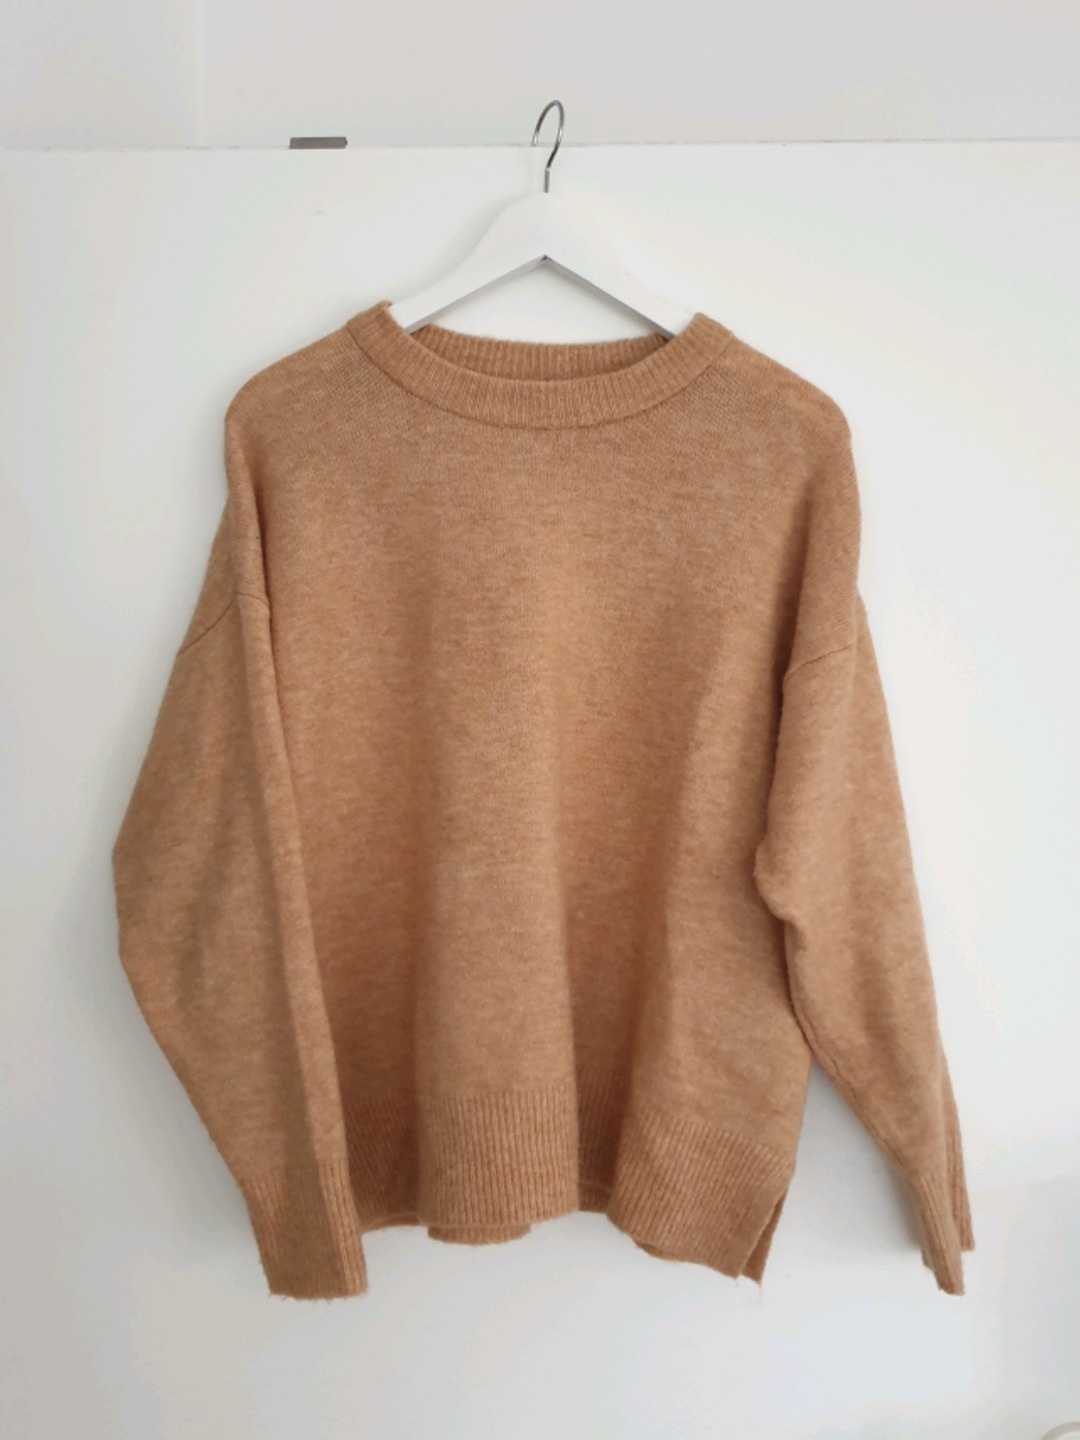 Women's jumpers & cardigans - NEW YORKER photo 1